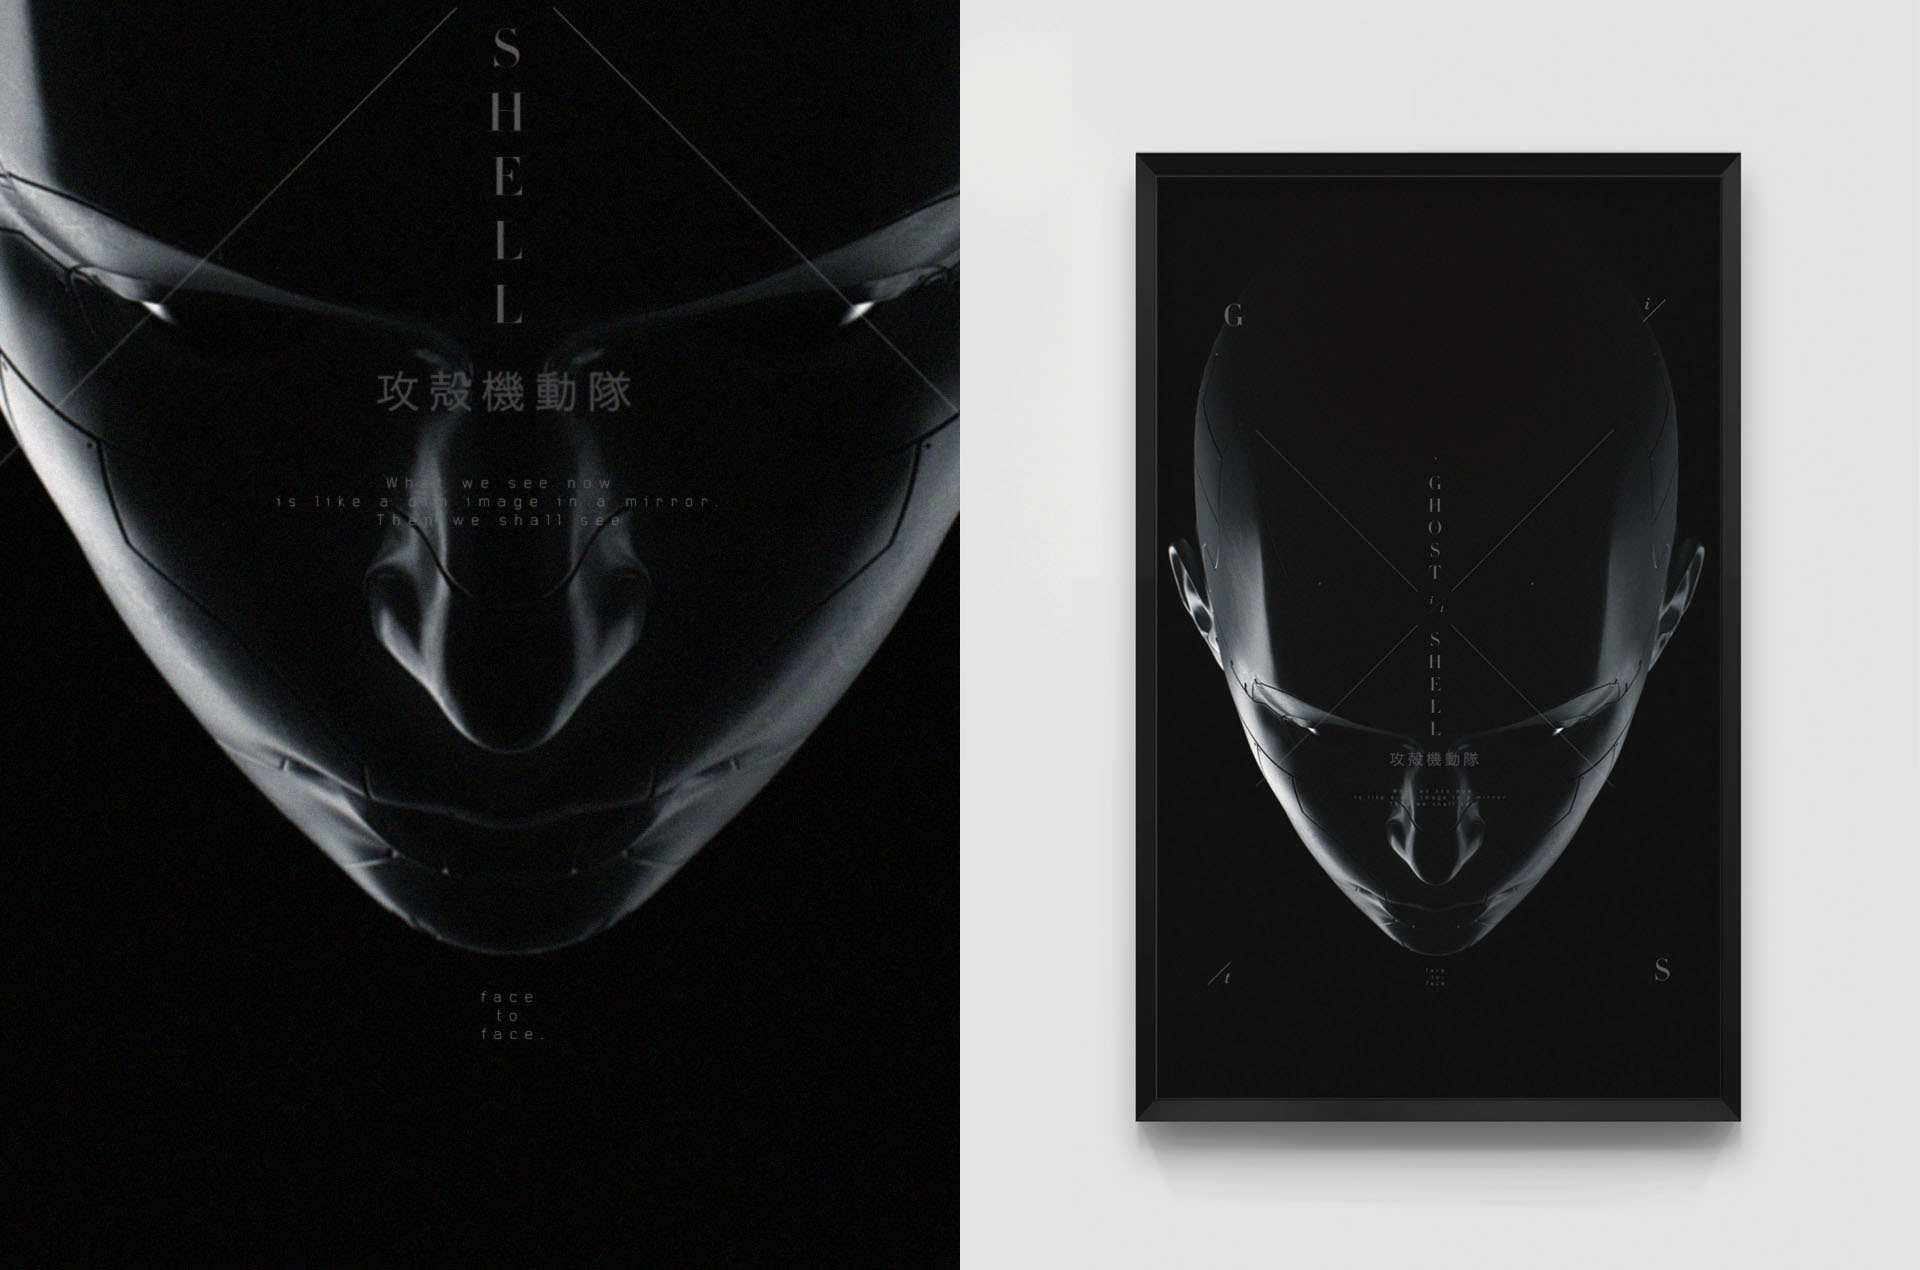 GITS_WEBSITE_POSTER_AT_05